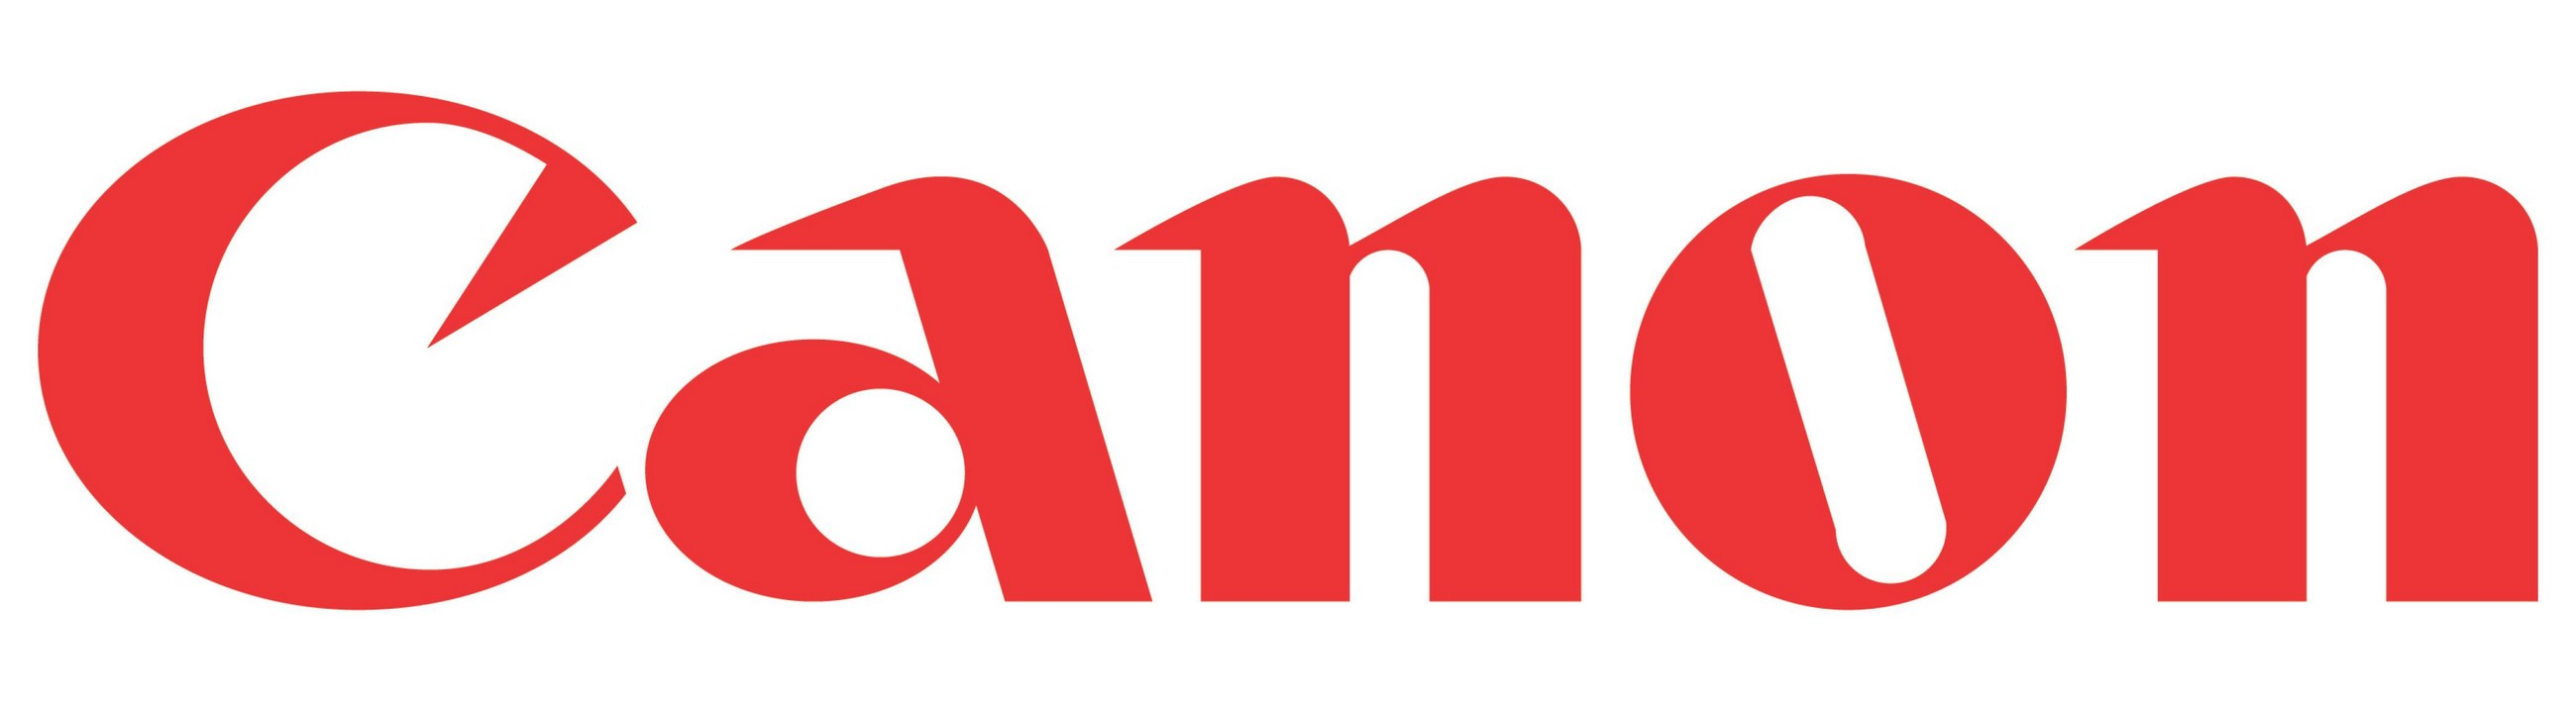 Canon Logo Eps PNG - 101430